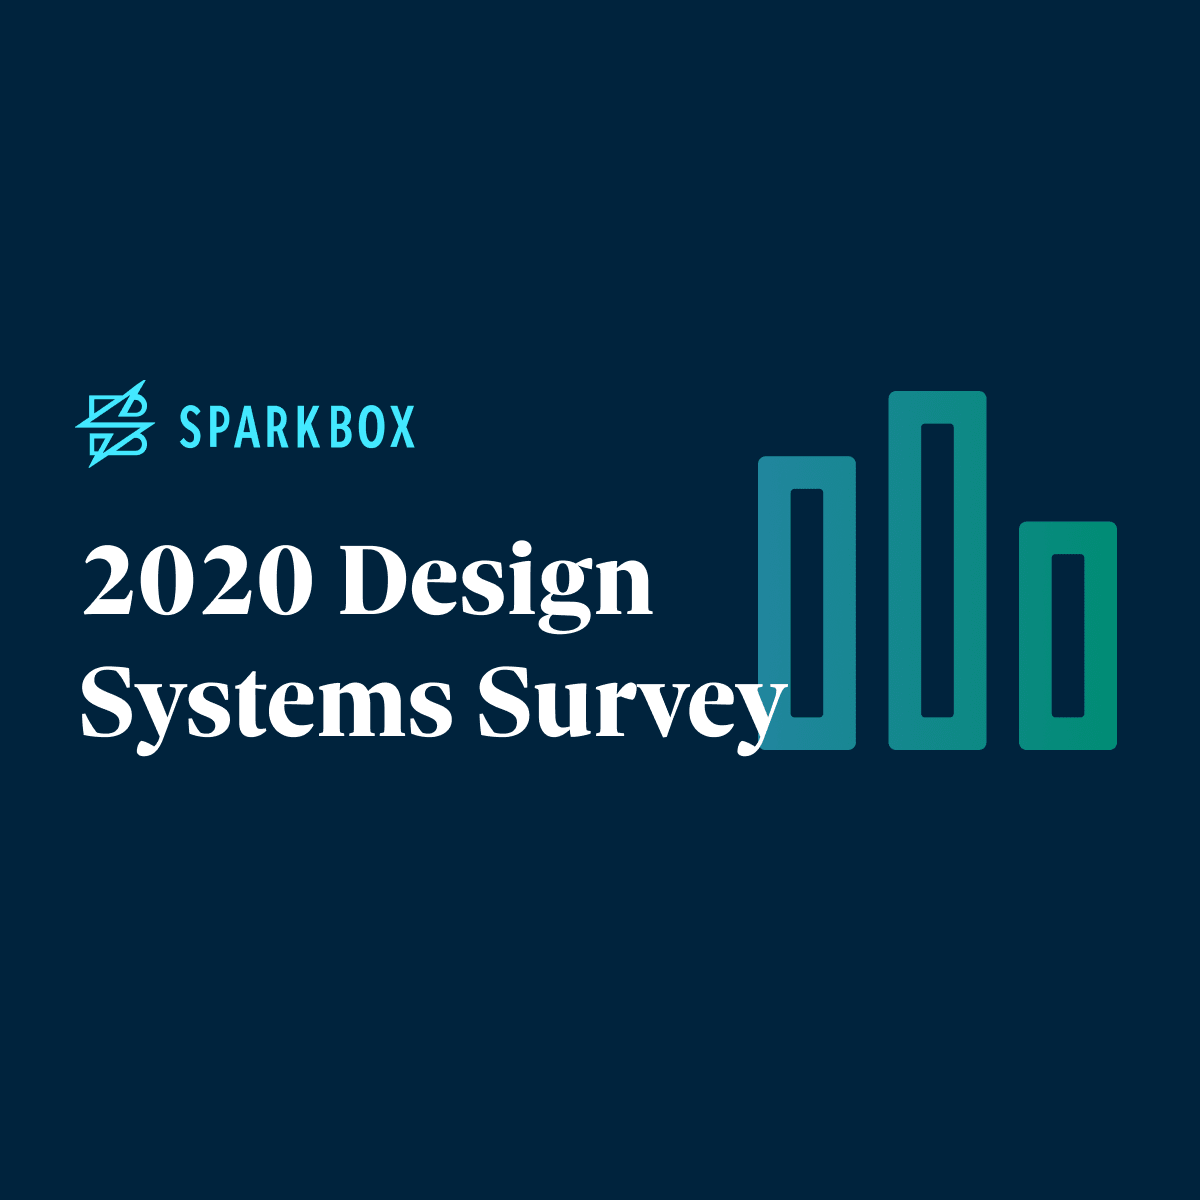 The 2020 Design Systems Survey by Sparkbox